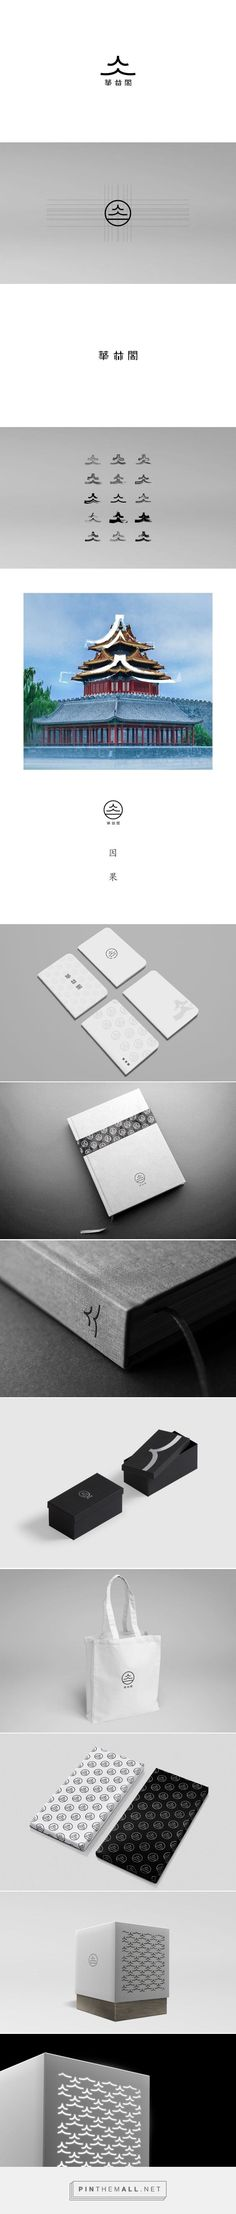 Hua Lin Ge temple brand packaging design by WingYang - http://www.packagingoftheworld.com/2016/12/hua-lin-ge.html. The UX Blog podcast is also available on iTunes.